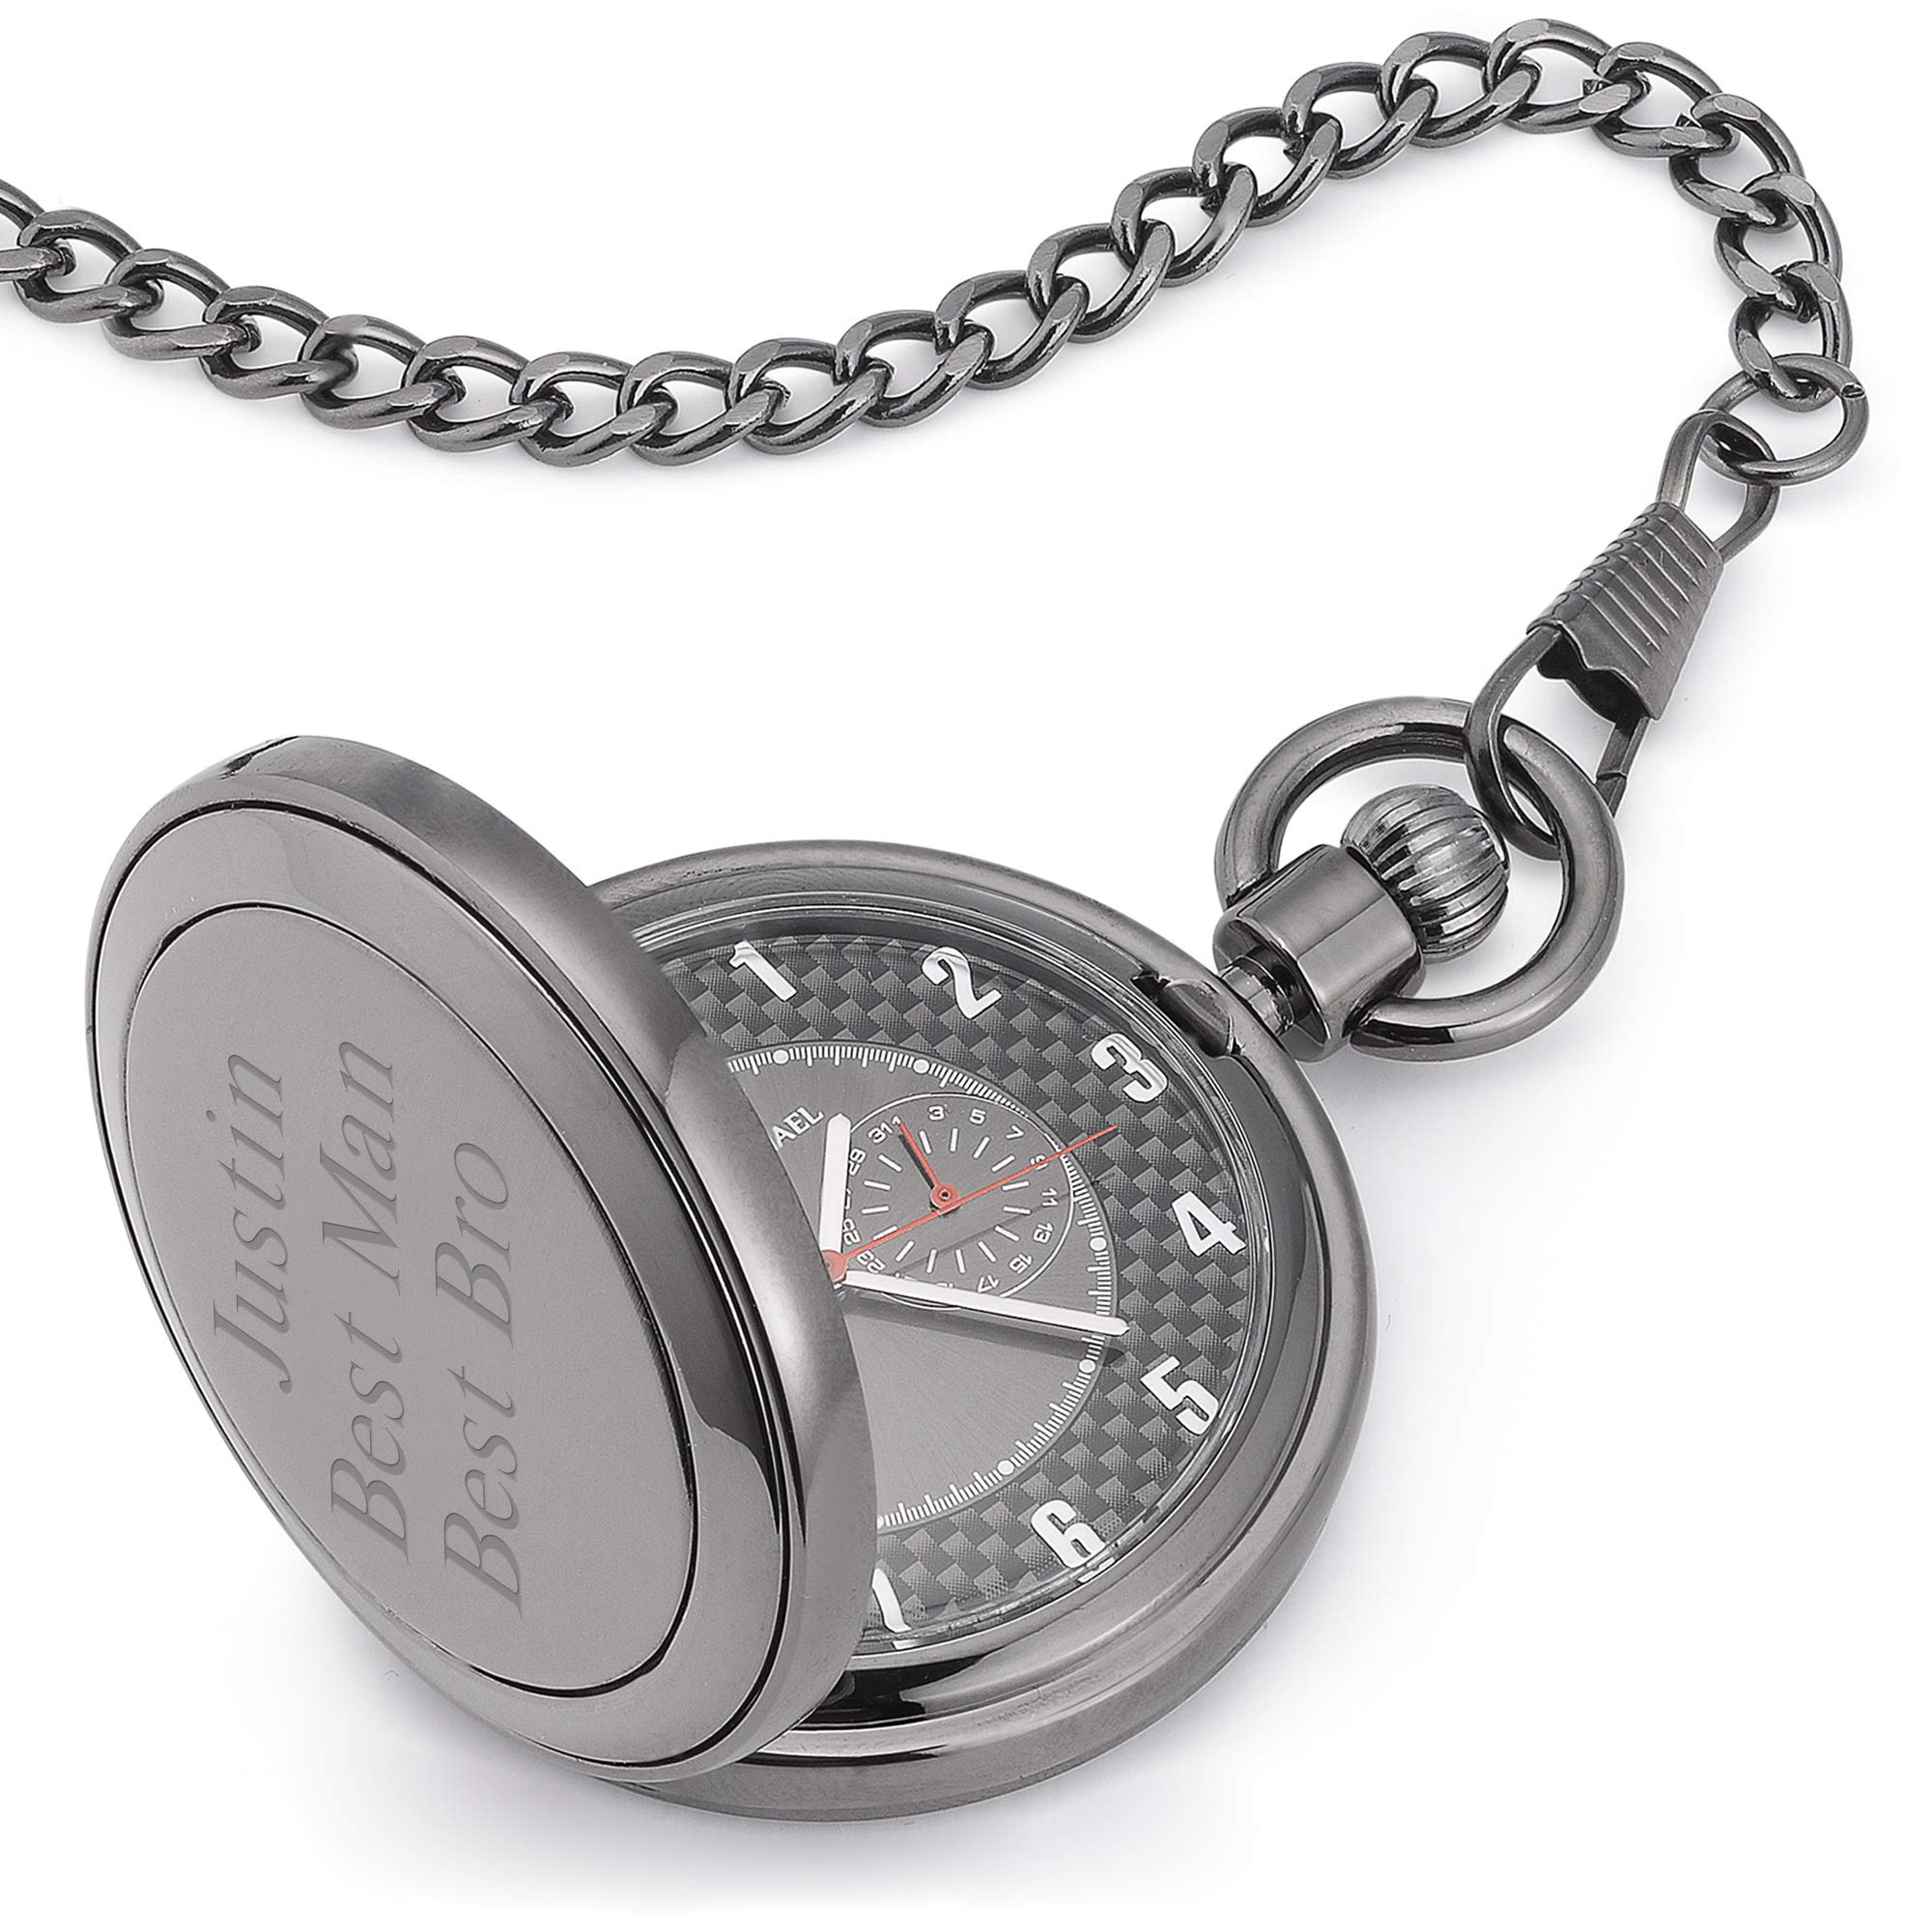 Things Remembered Personalized Gunmetal Carbon Fiber Pocket Watch with Engraving Included by Things Remembered